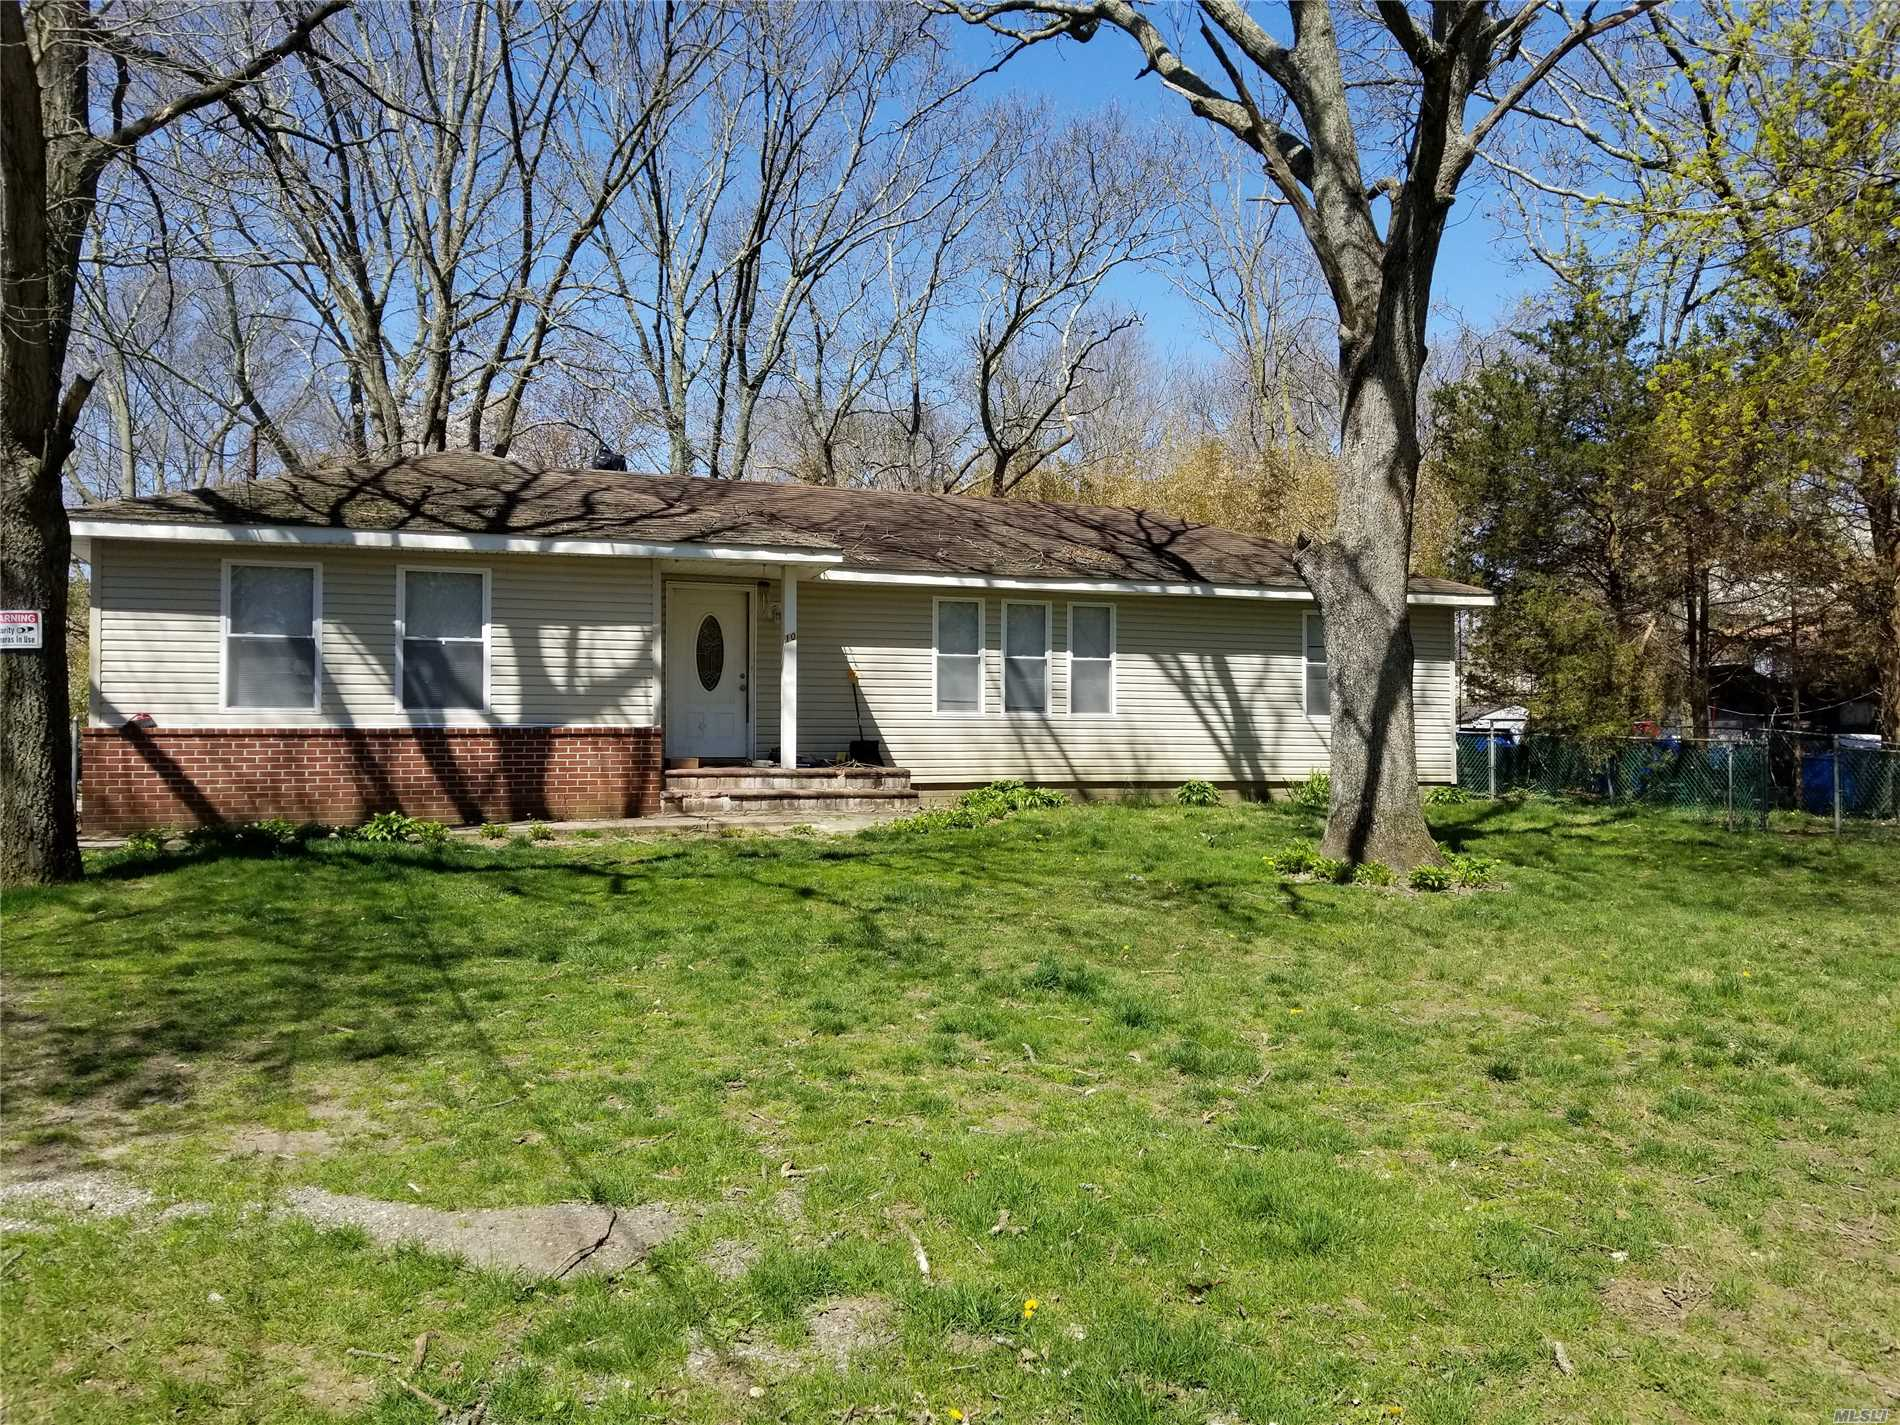 Photo of home for sale at 10 Dourland Rd, Medford NY